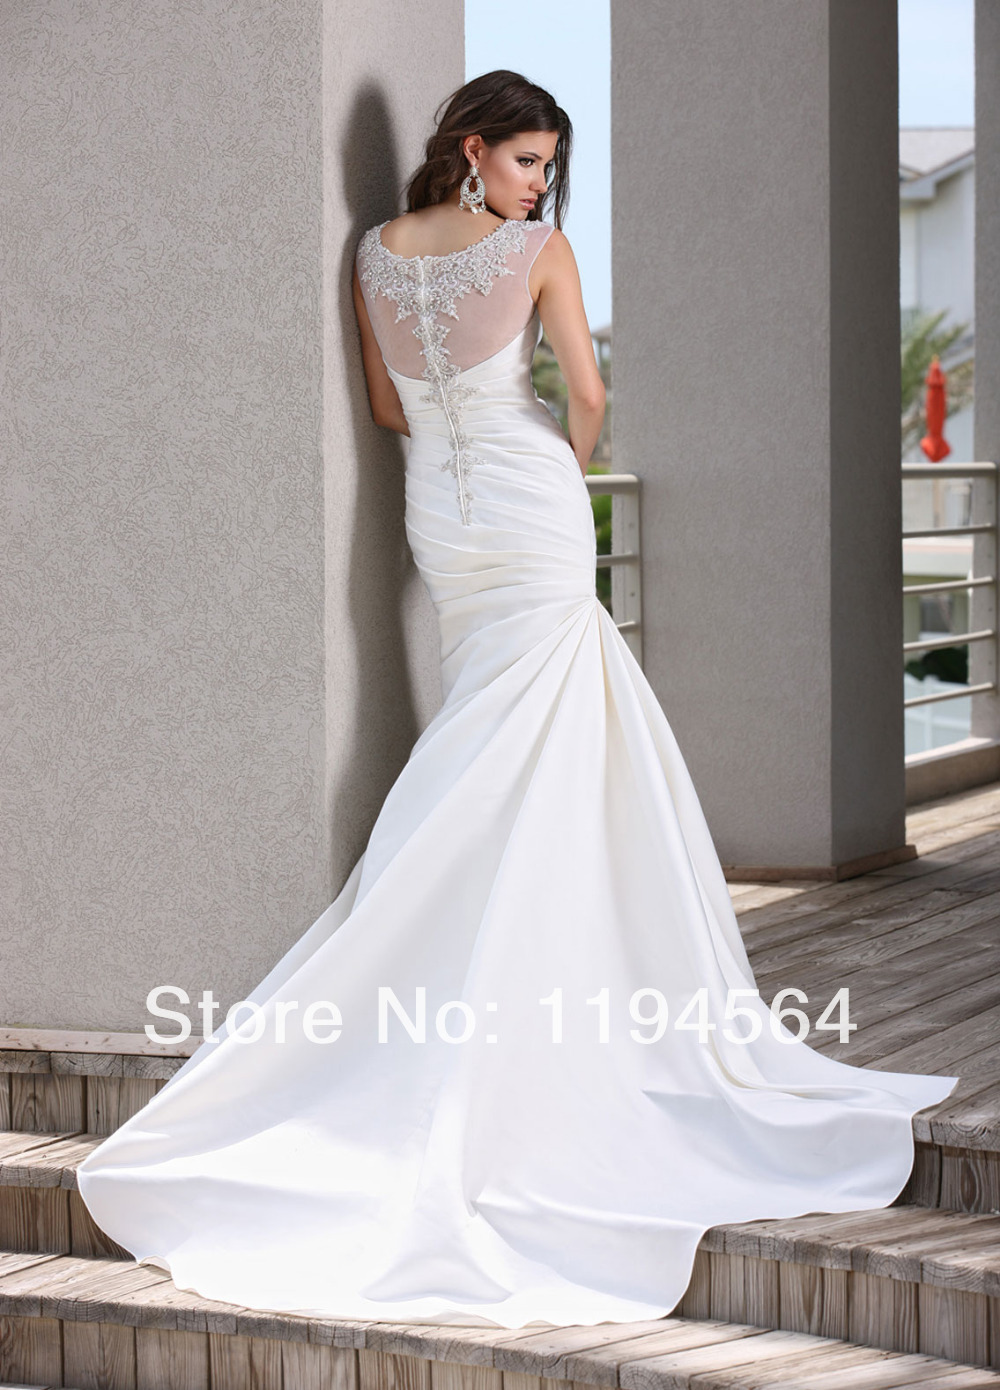 Appliques and Beaded See Through Wedding Reception Dress Fashion 2014 White  Mermaid Taffeta Bridal Gowns Free Shipping WH1298-in Wedding Dresses from  ... 1788e49a763f